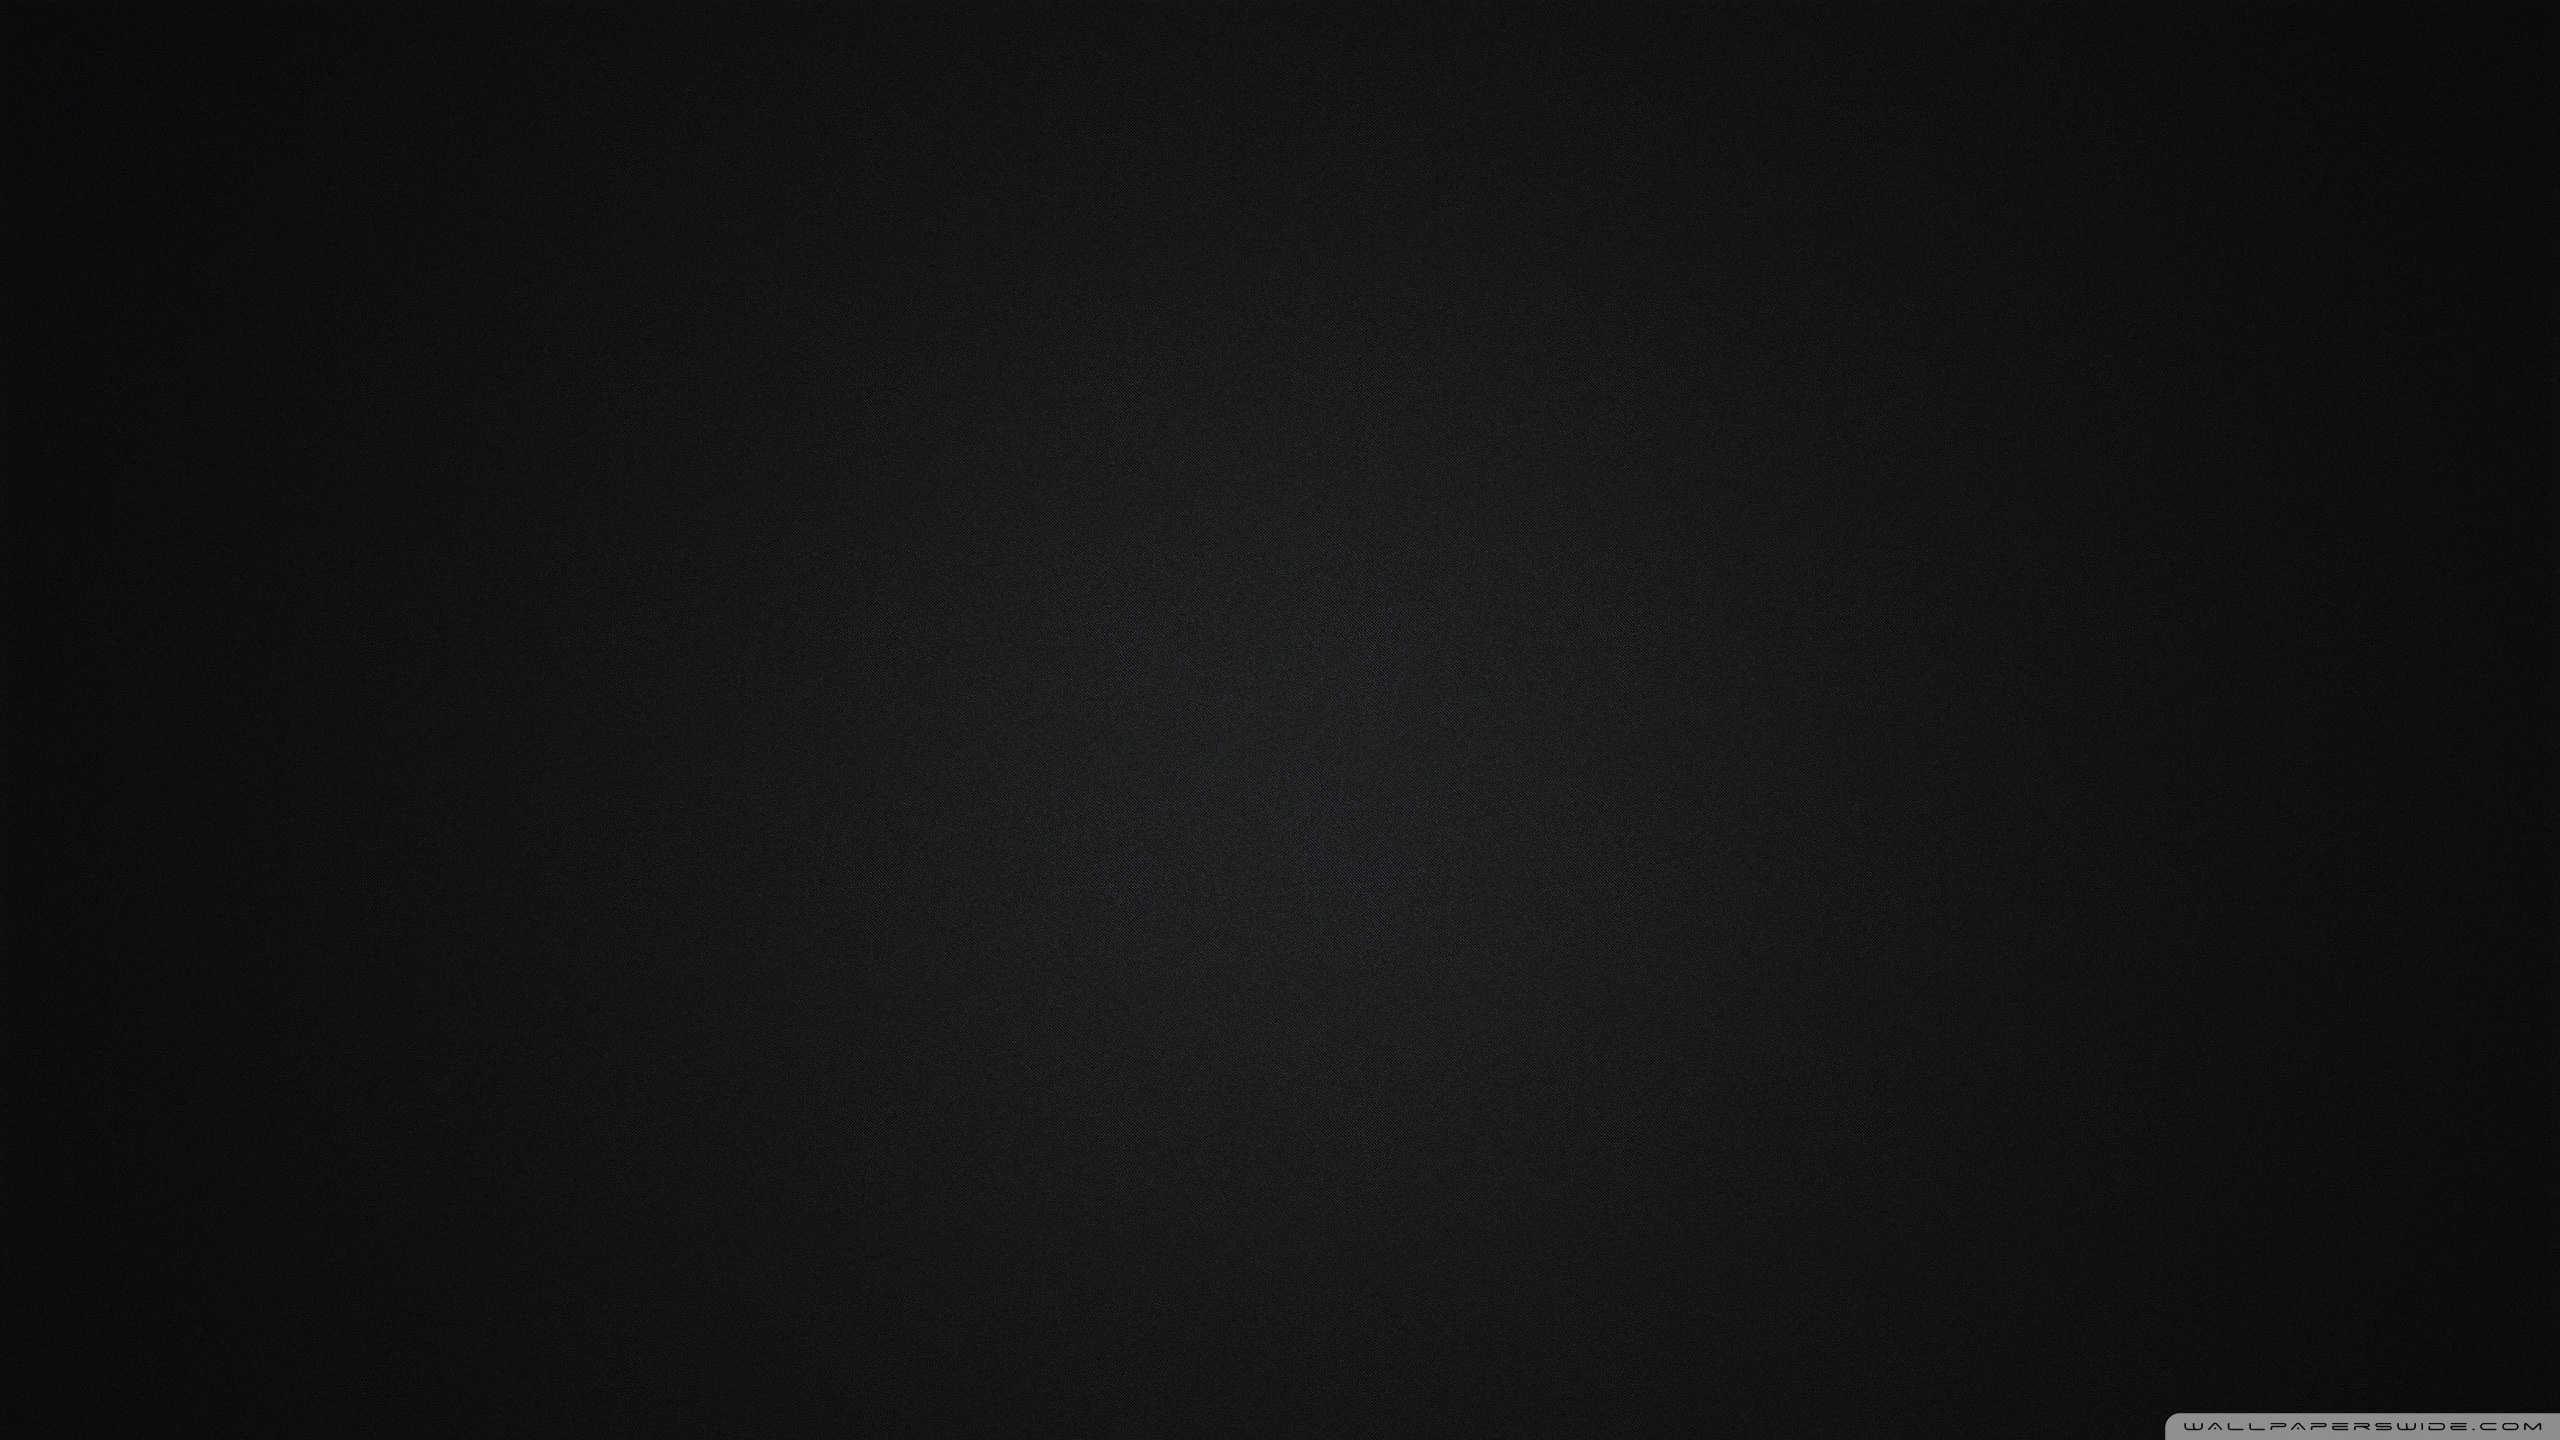 Plain Black Screen 2 Background